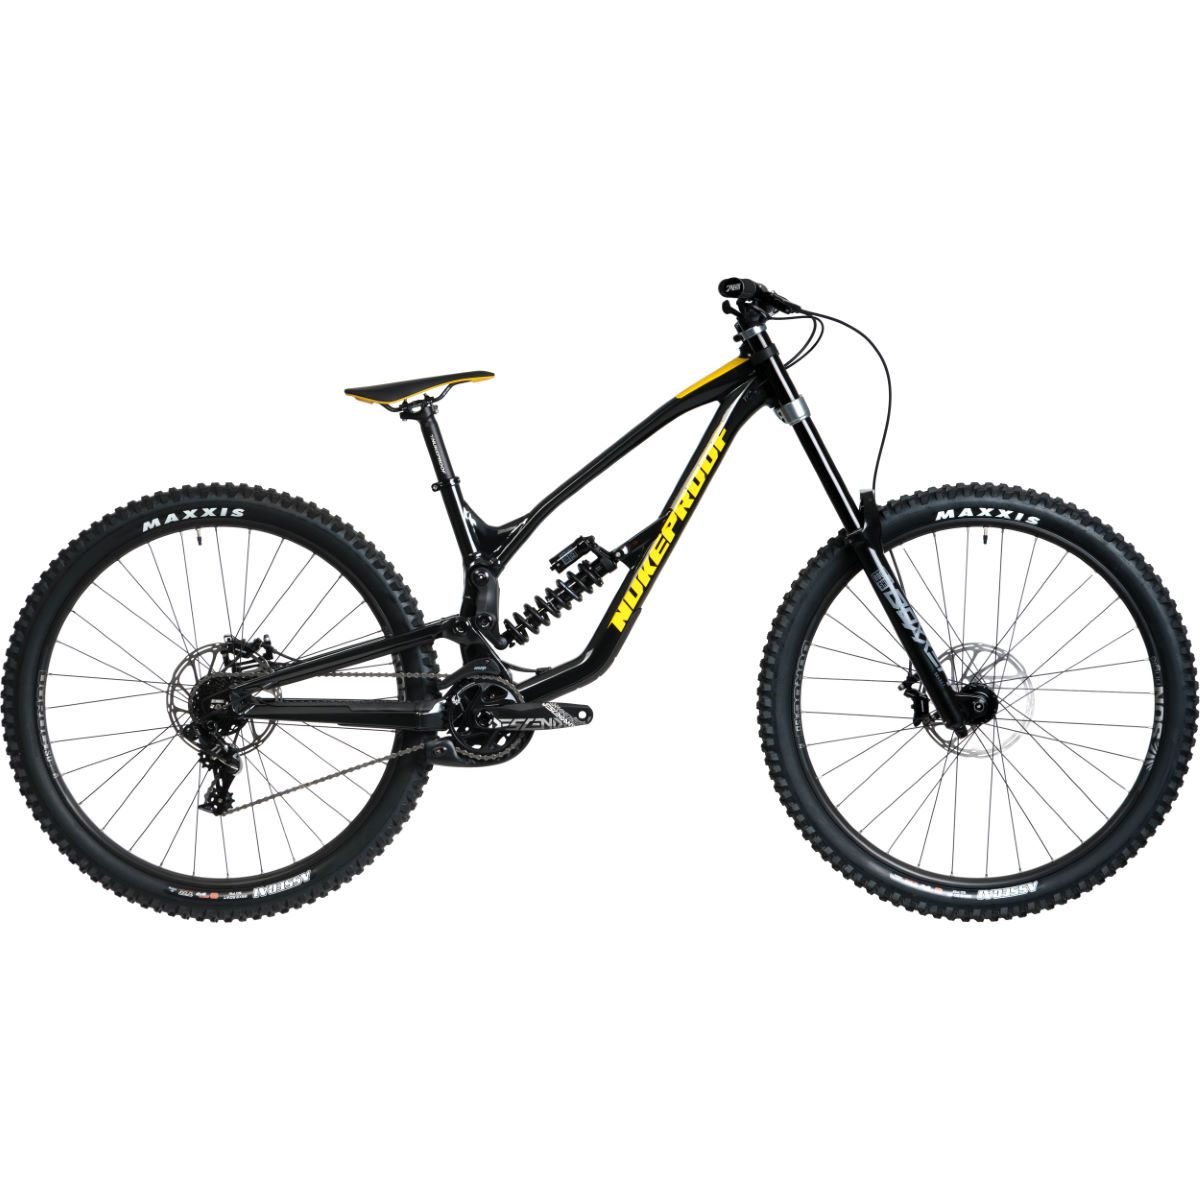 Nukeproof Nukeproof Dissent 290 Comp DH Bike (GX - 2020)   Full Suspension Mountain Bikes